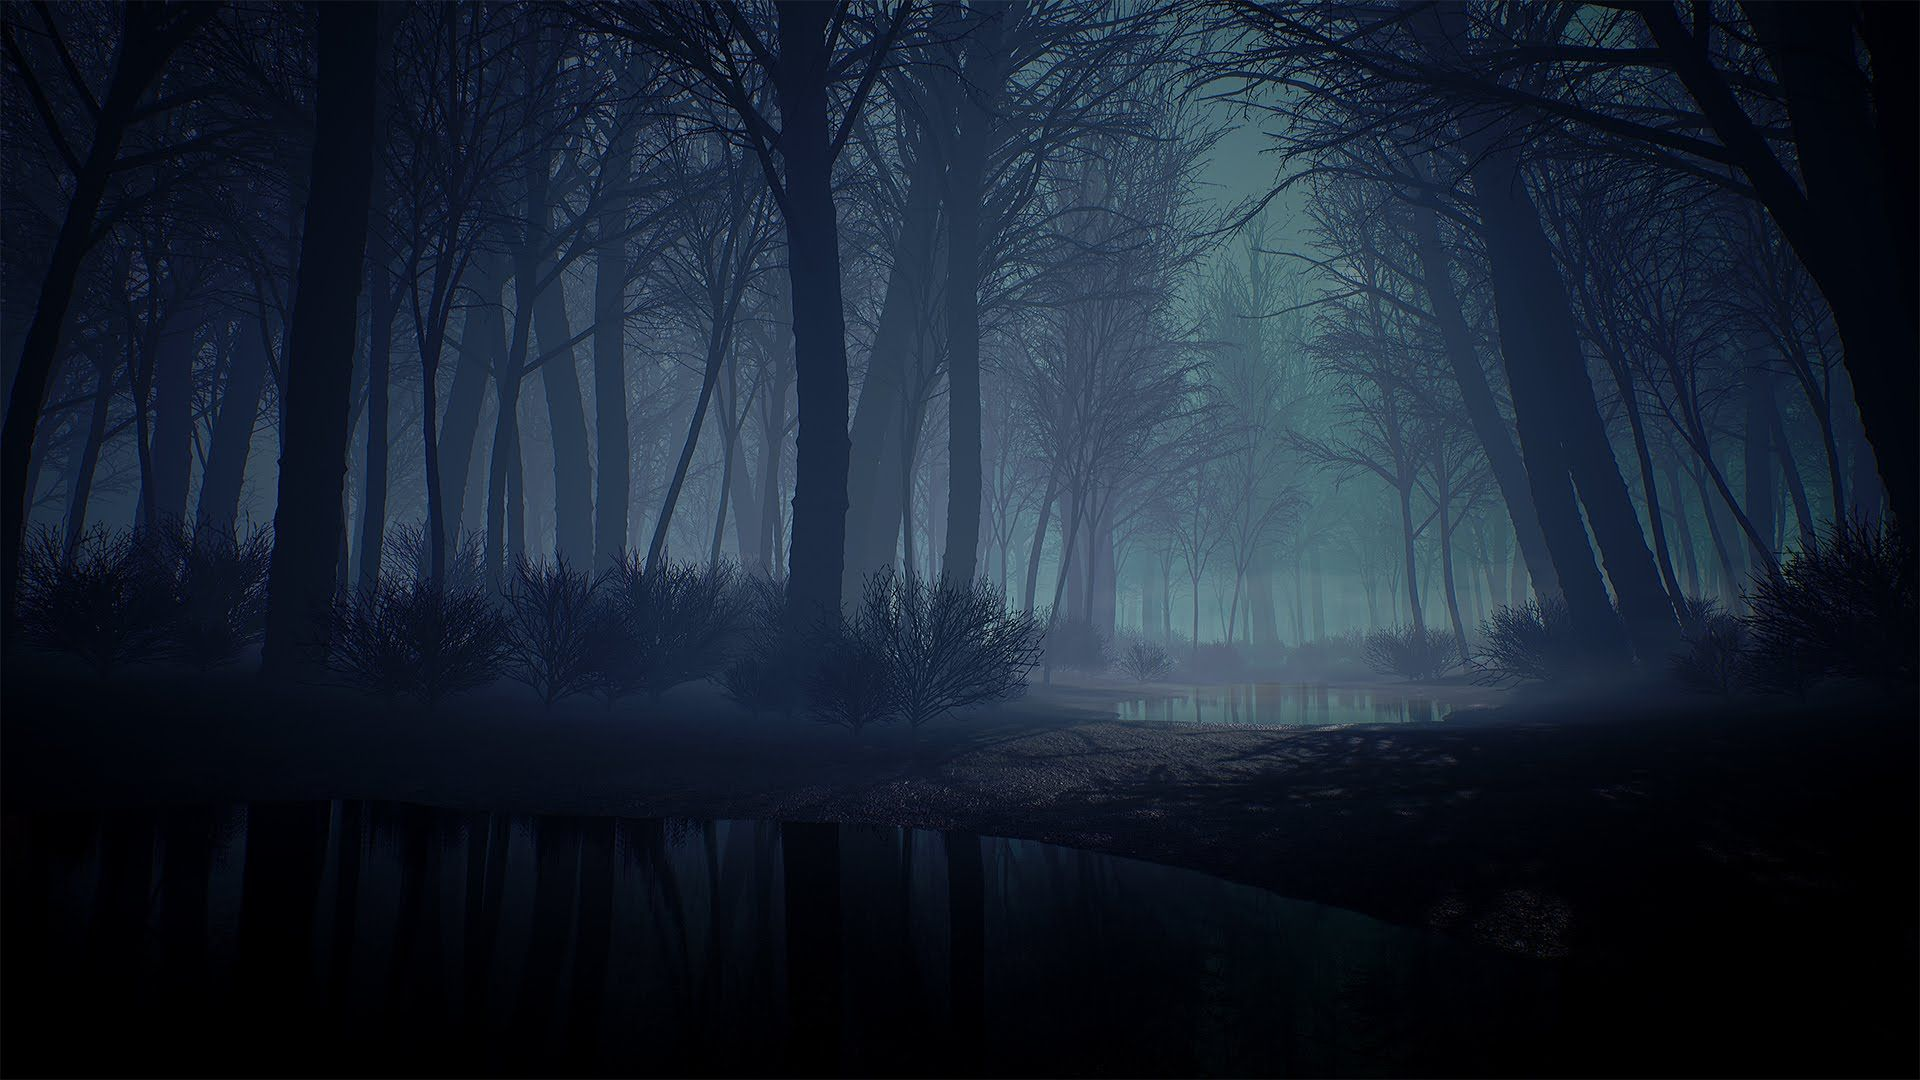 A Quick Creepy Forest Environment In Ue4 Youtube Creepy Backgrounds Fantasy Forest Fantasy Castle